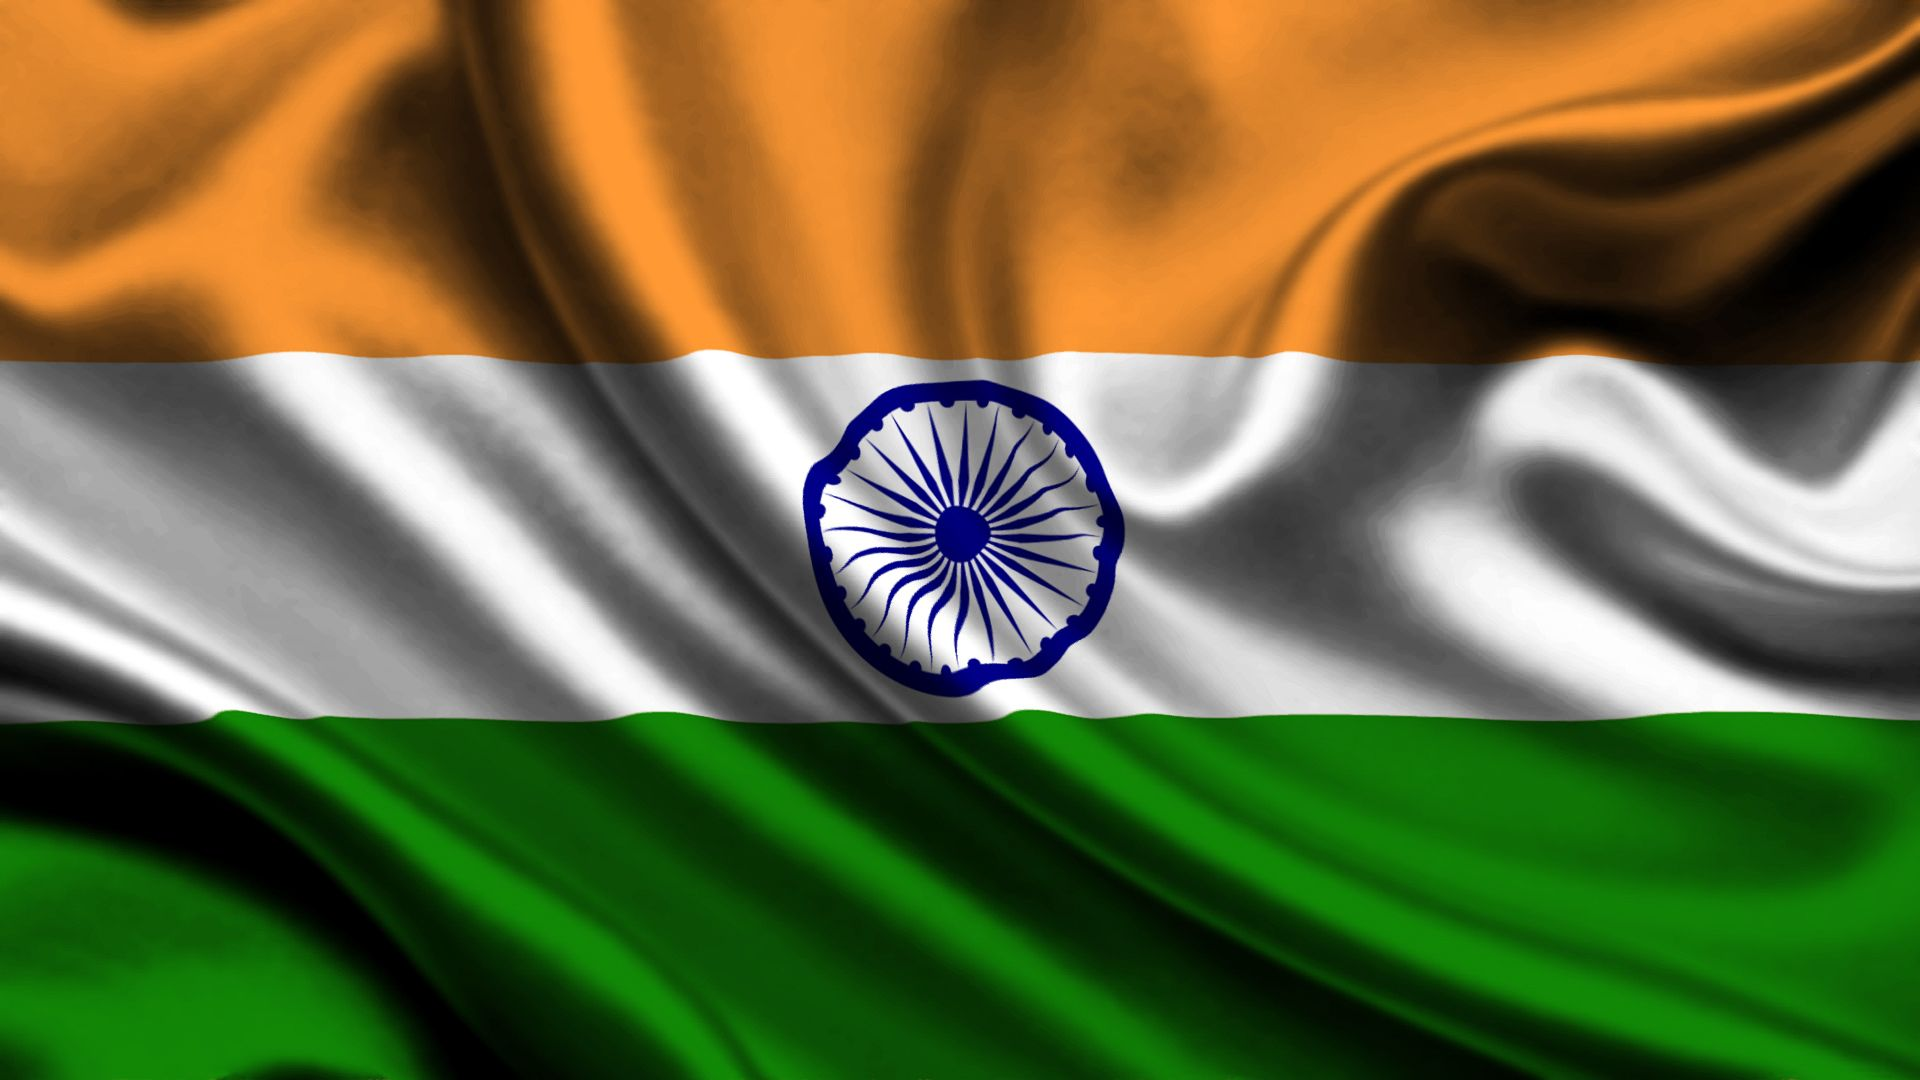 India Flag http://livewallpaperswide.com/cities/india-flag-4186 Flag ...